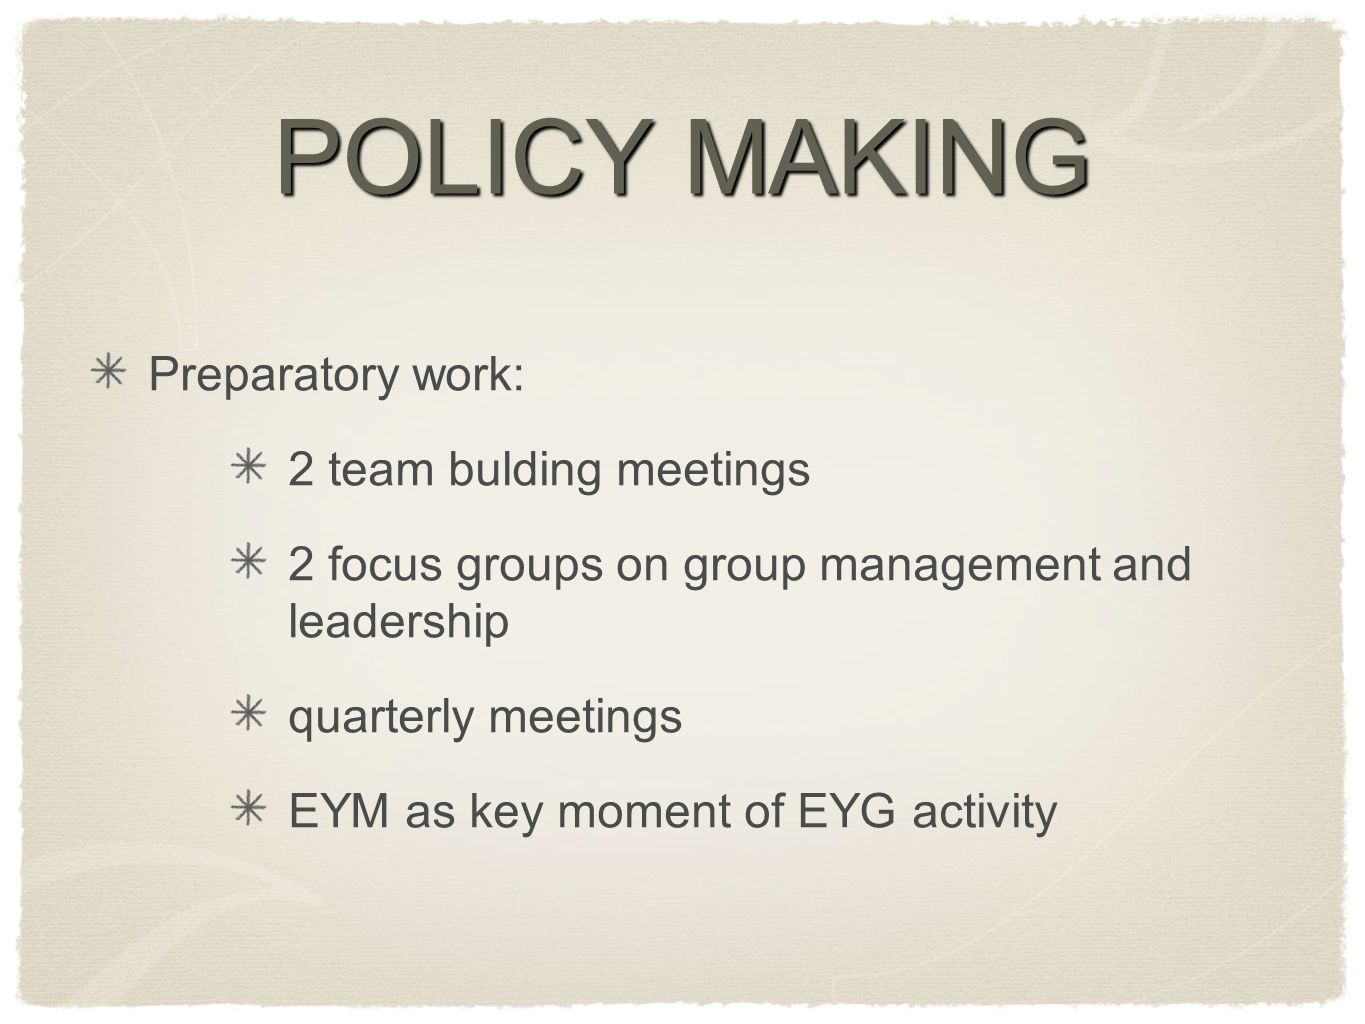 POLICY MAKING Preparatory work: 2 team bulding meetings 2 focus groups on group management and leadership quarterly meetings EYM as key moment of EYG activity